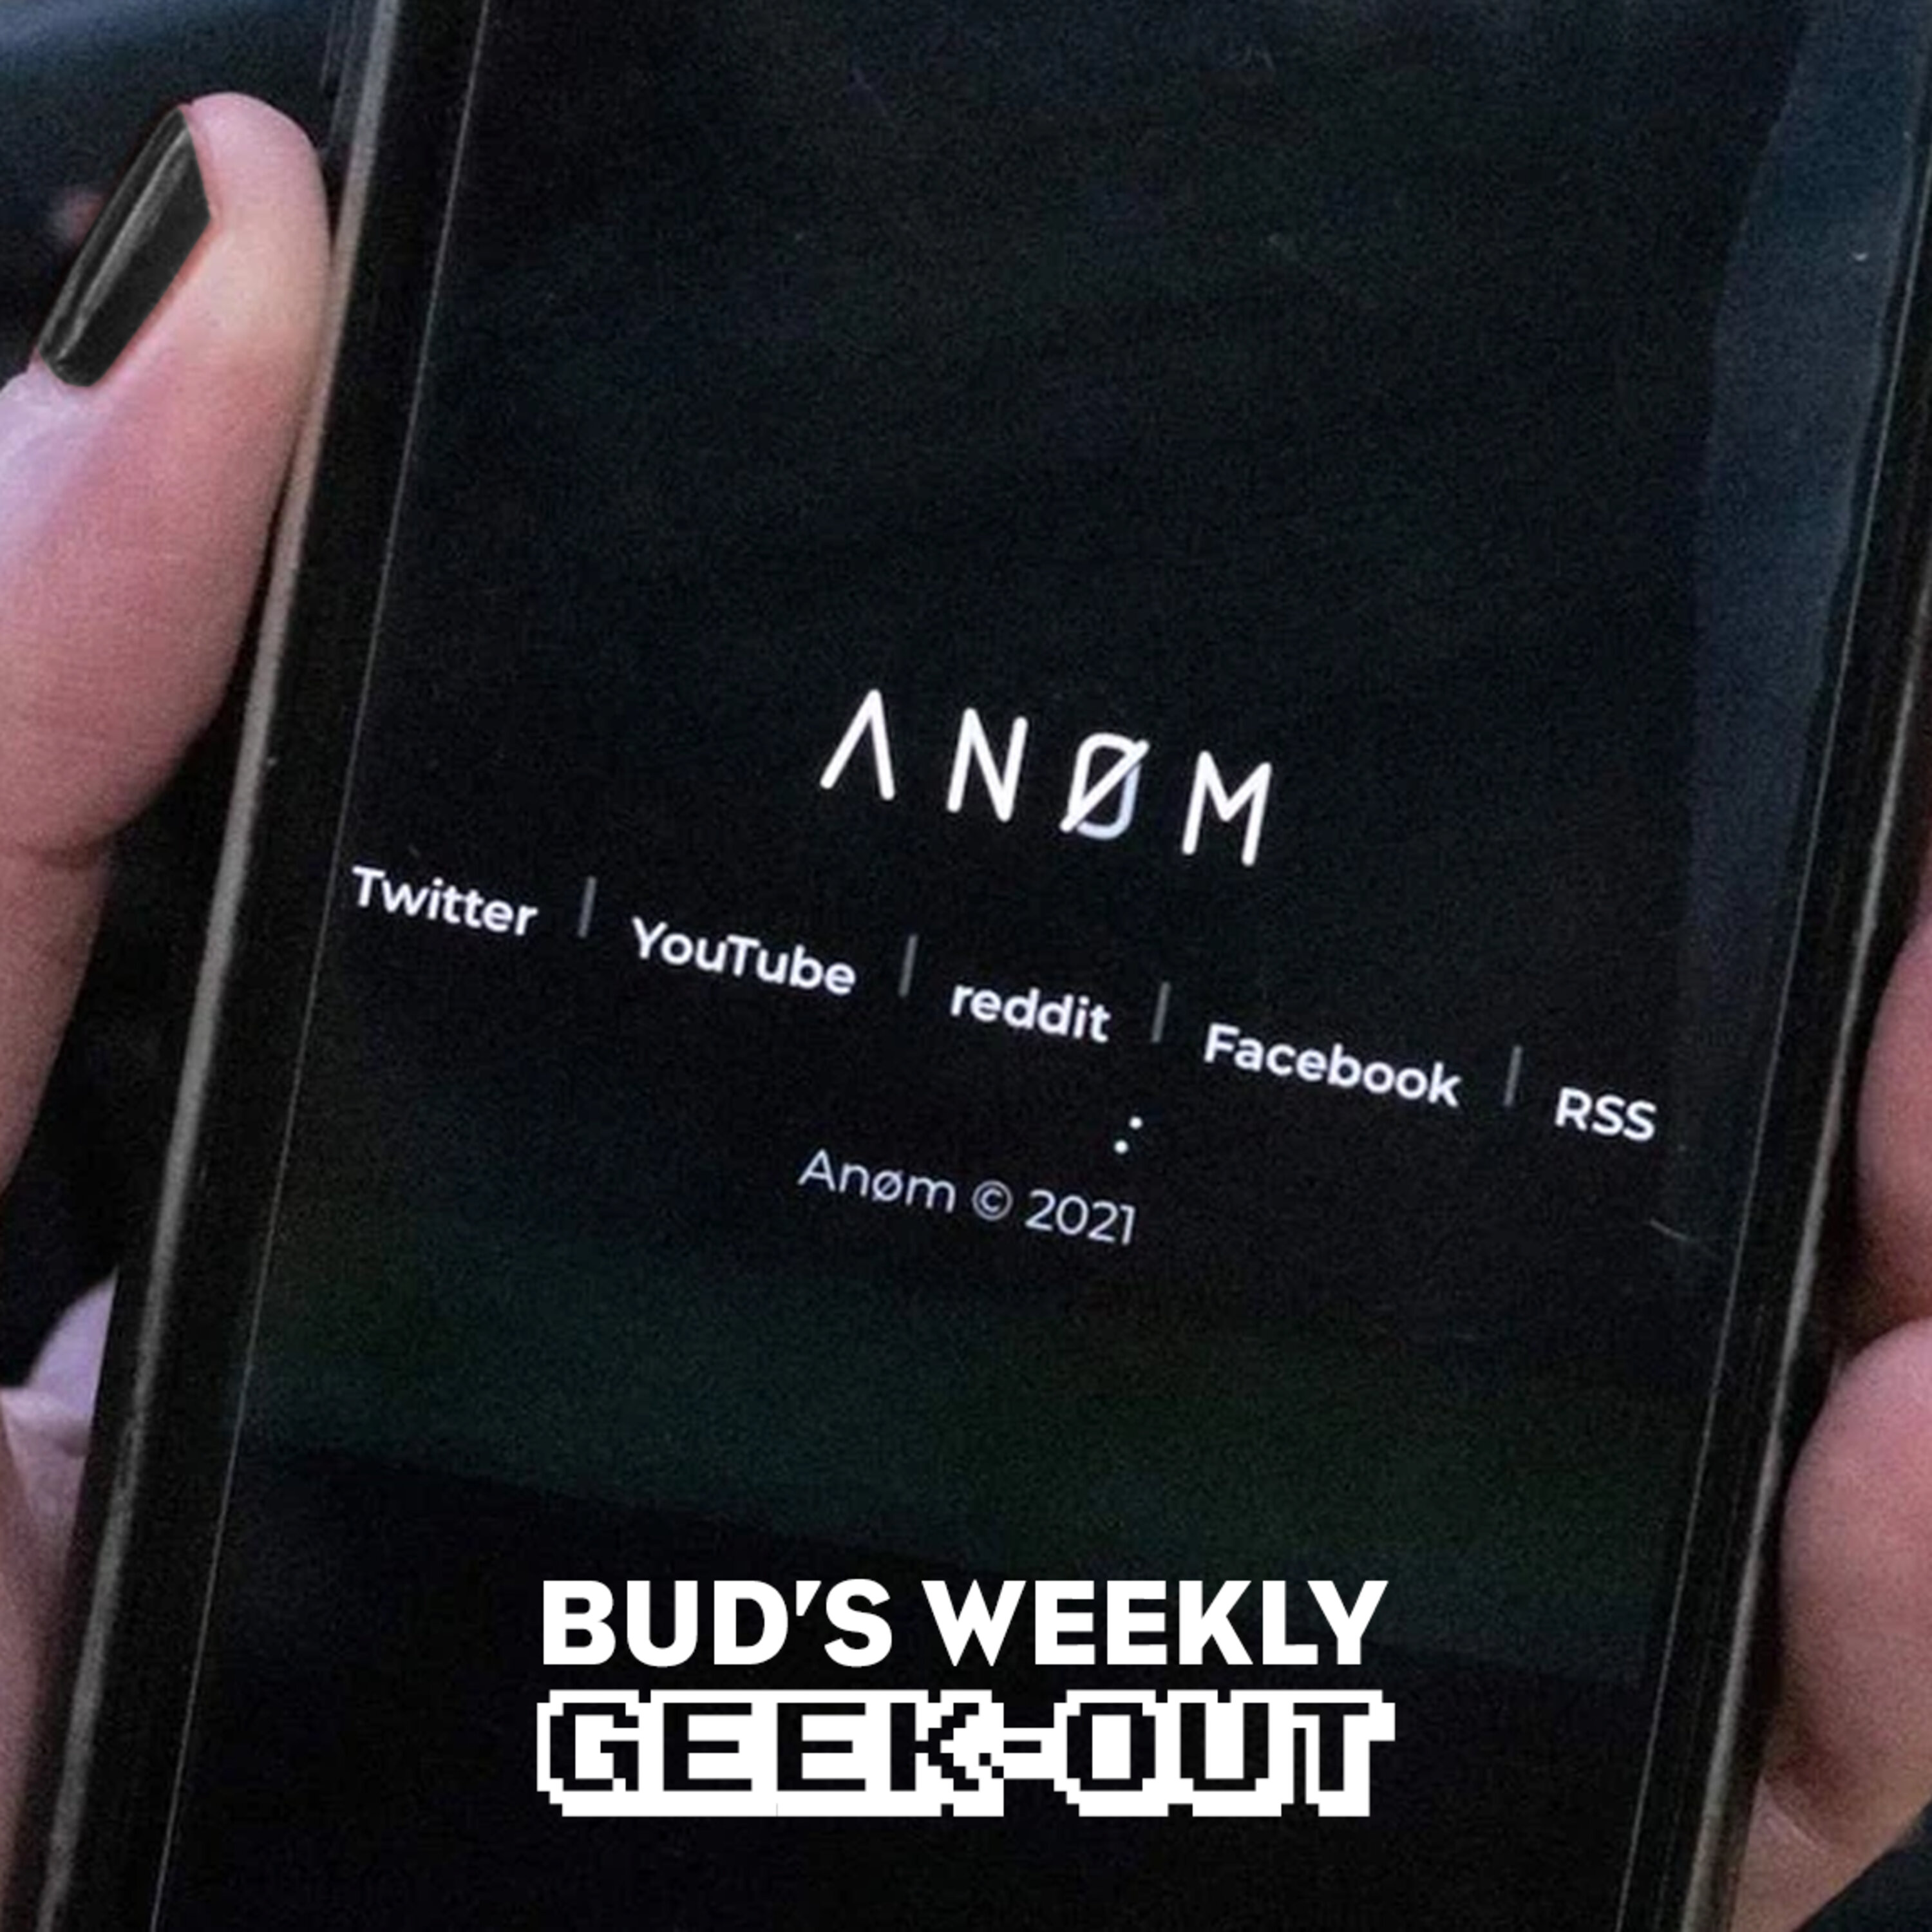 Bud's Weekly Geek-out! 20210616 - ANOM